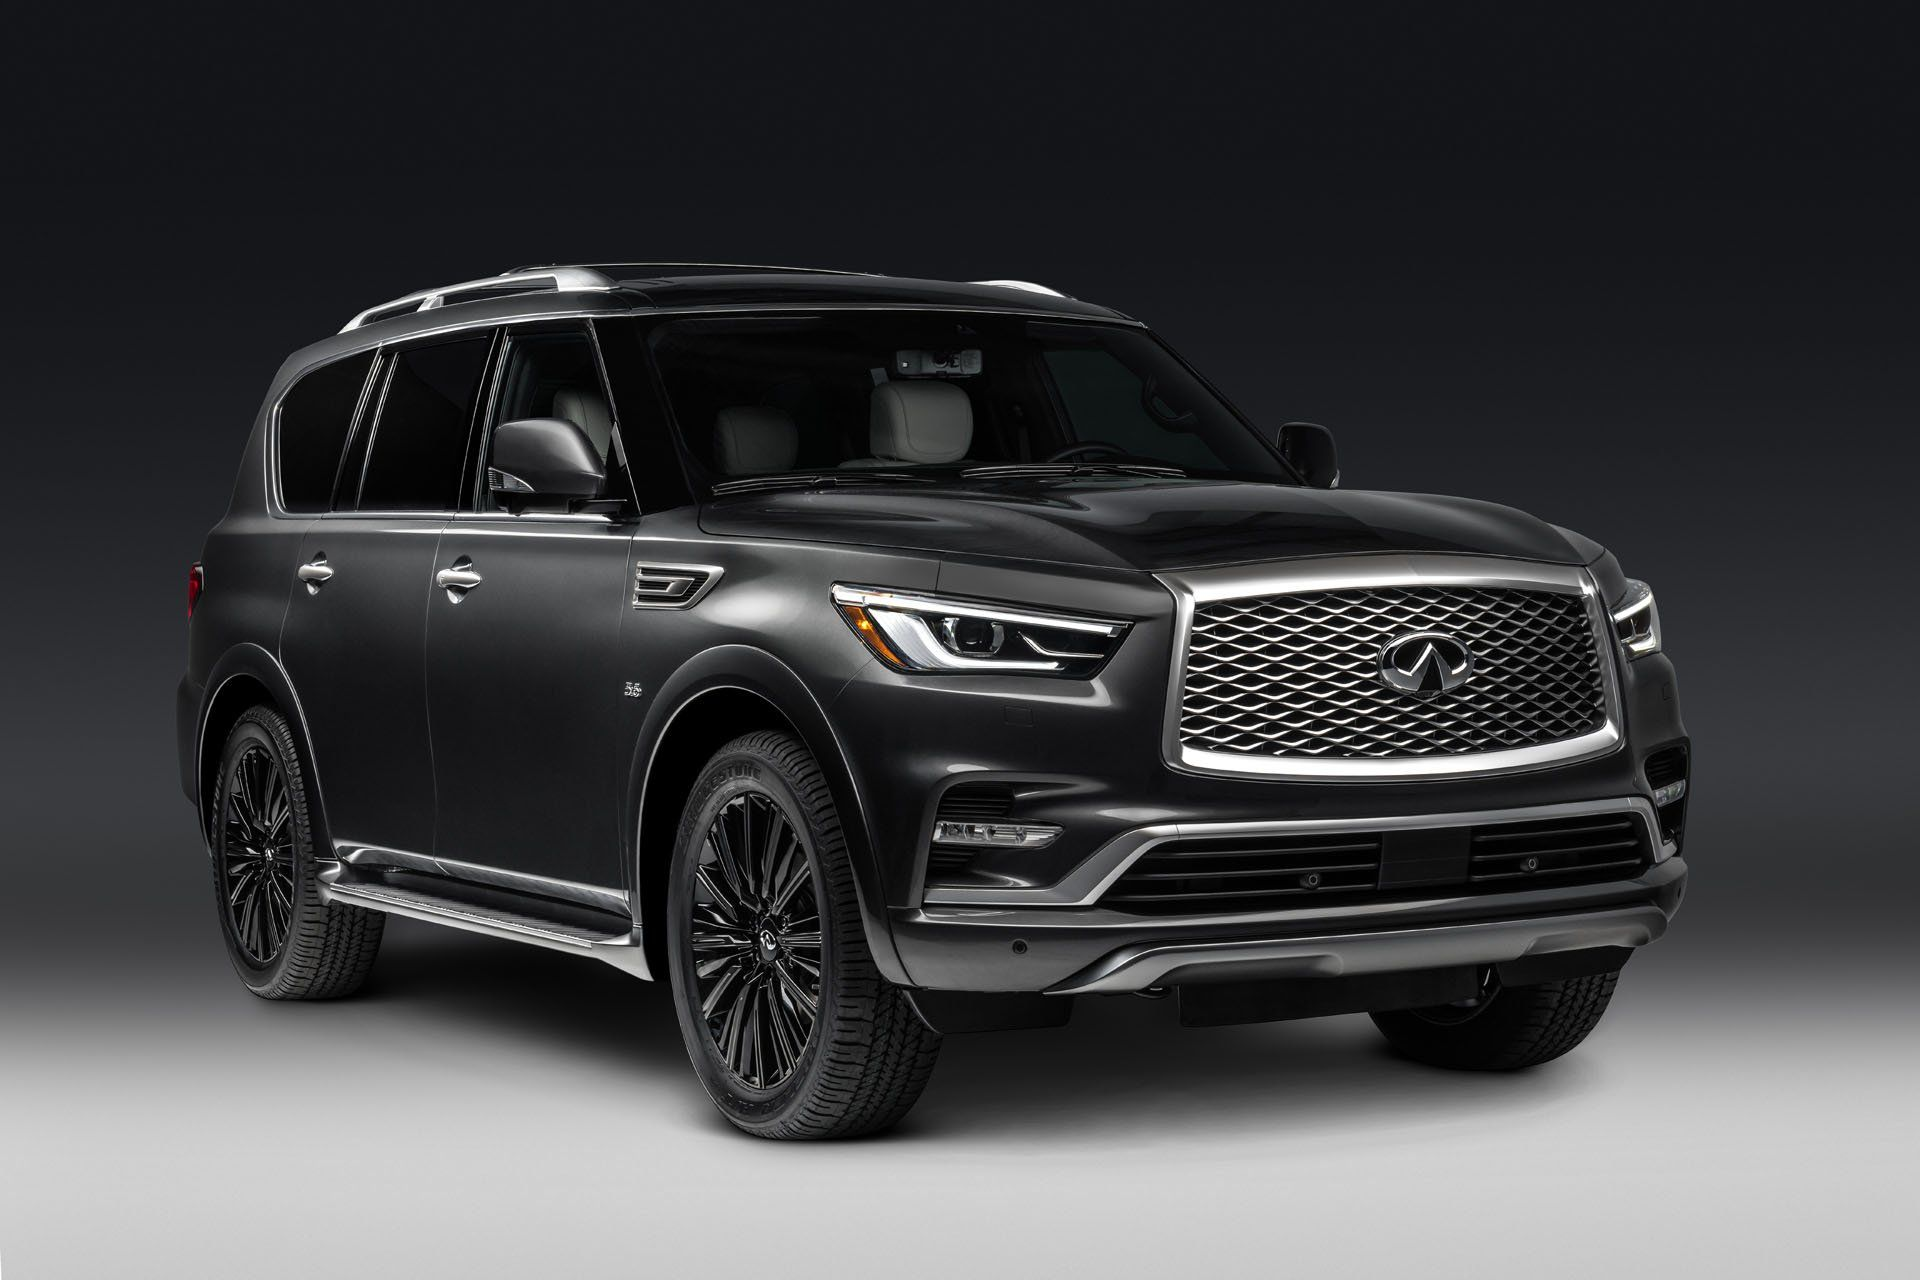 Infiniti Qx80 Signature Edition Comes Full Of Toys Starts From